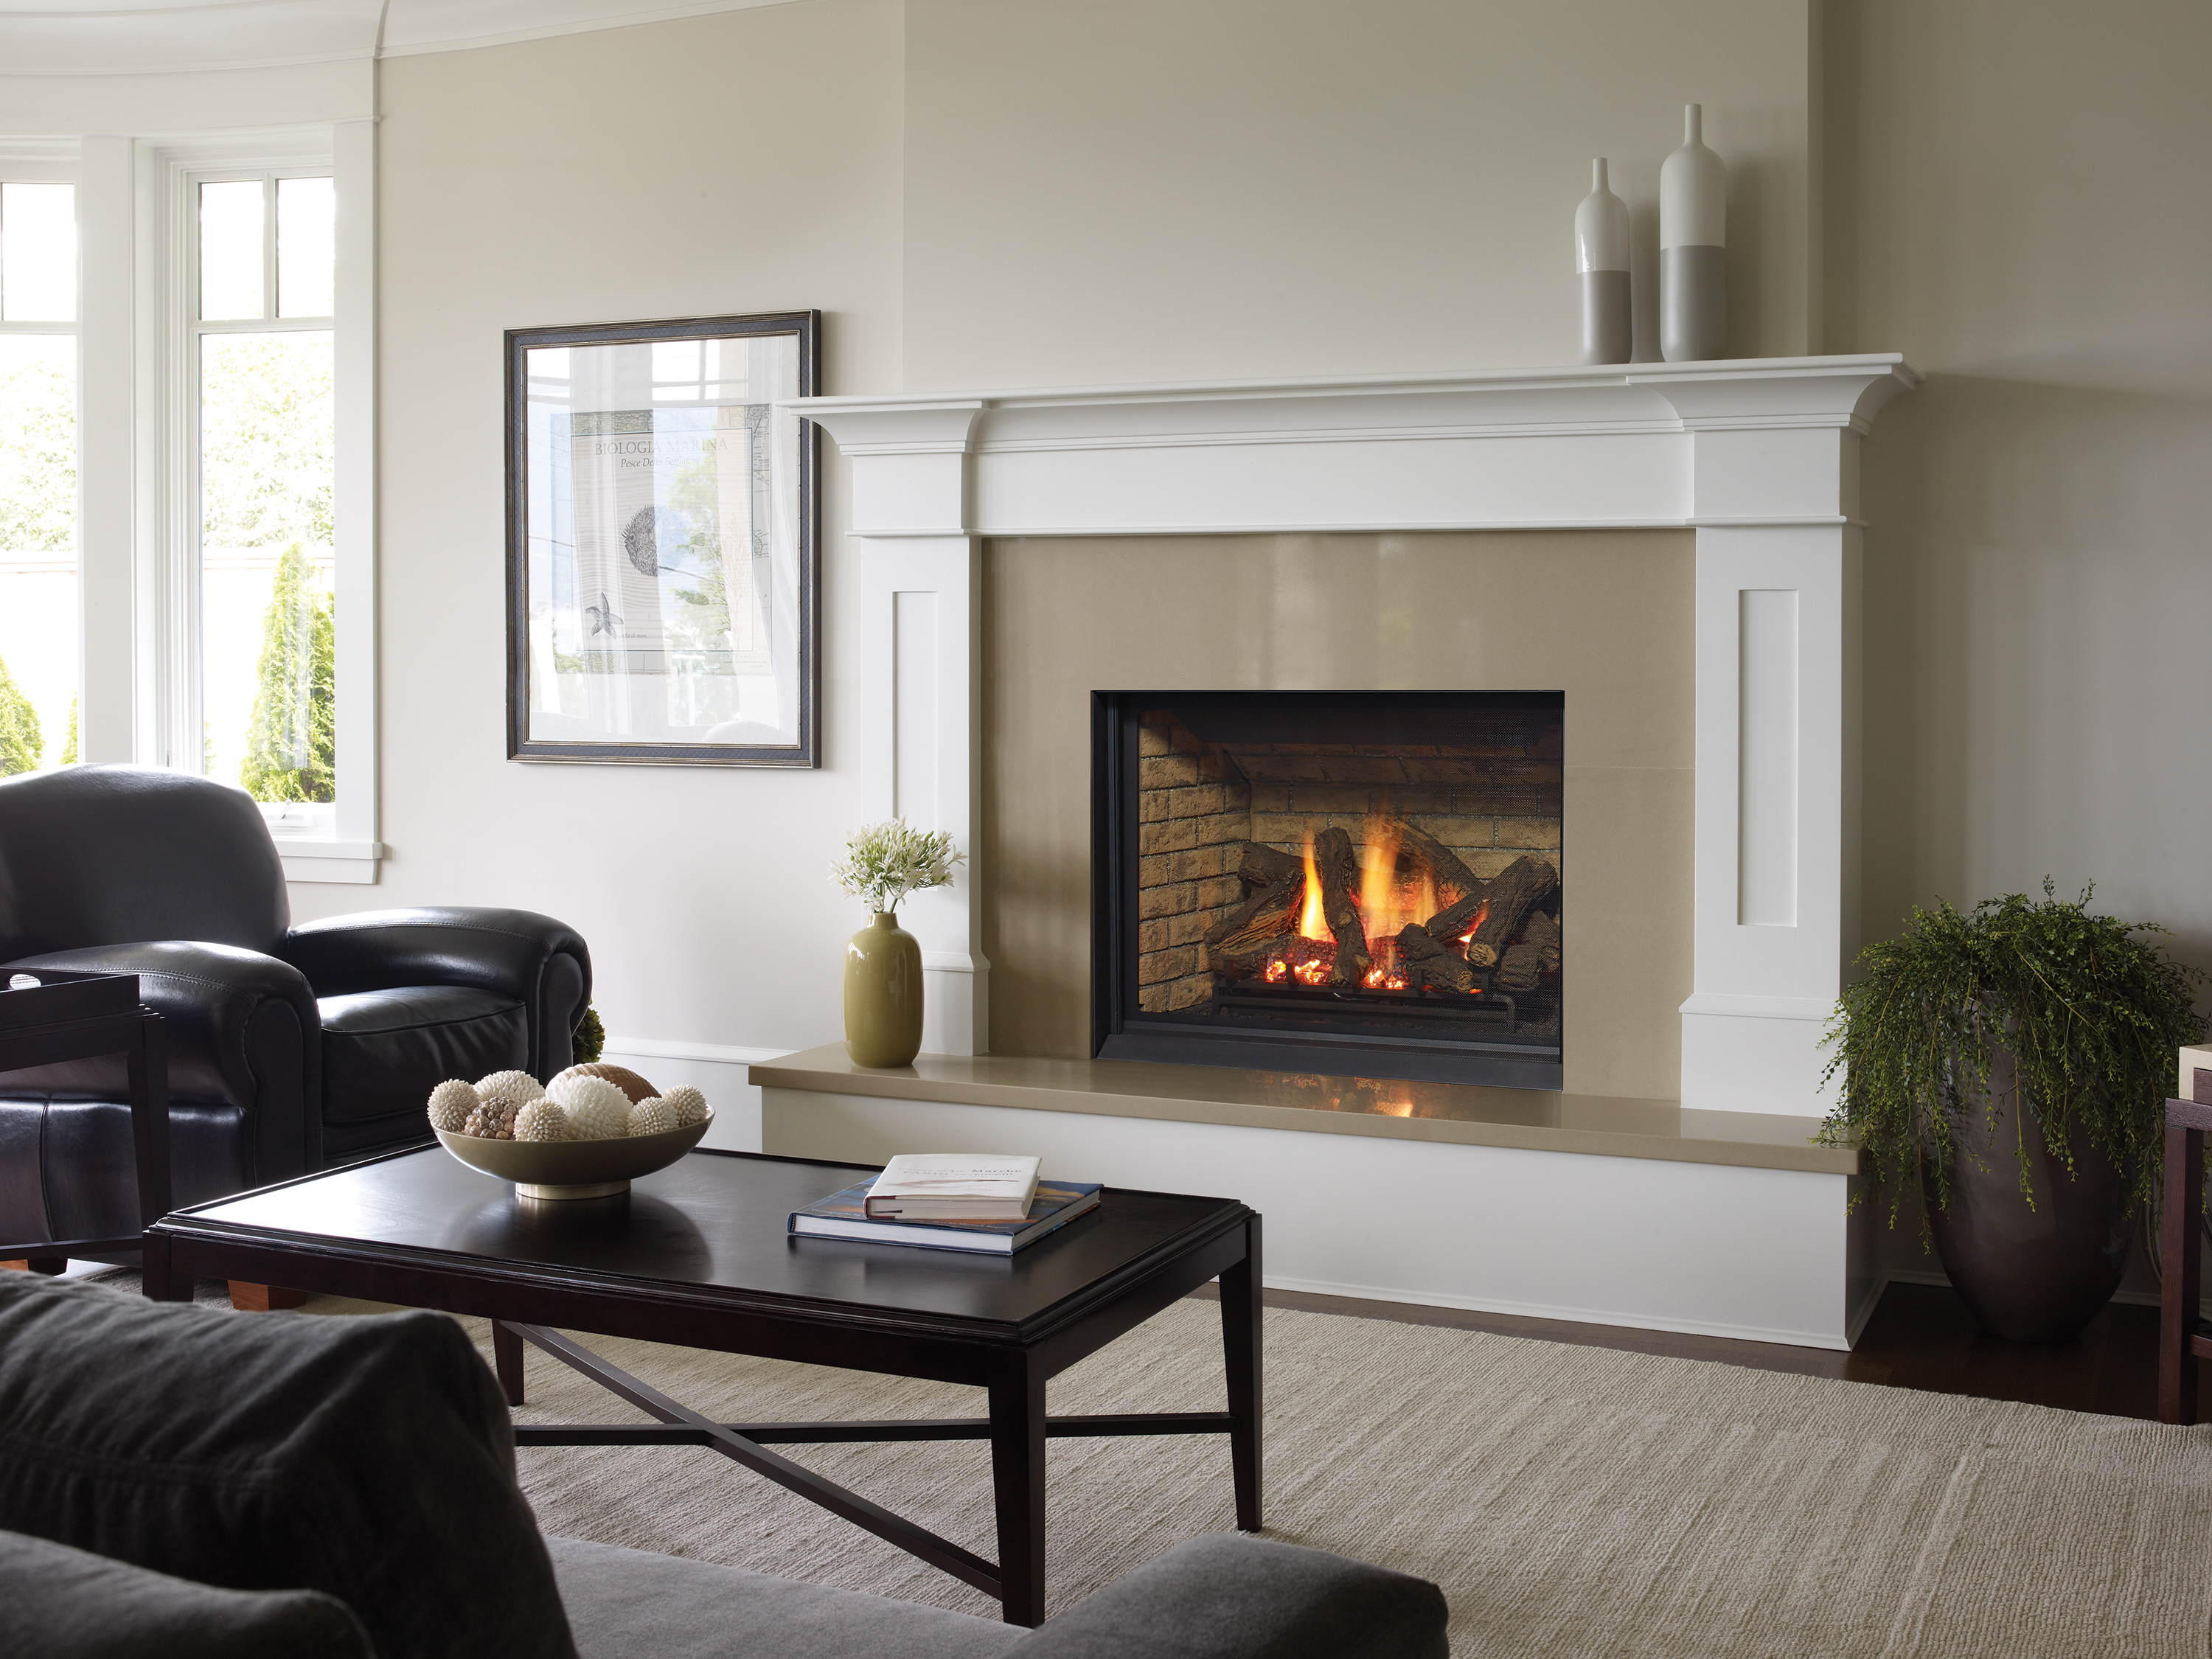 Learn more about Regency Direct Vent Fireplaces by clicking here!  Call Dutch (860-873-3876) for more information on installations!